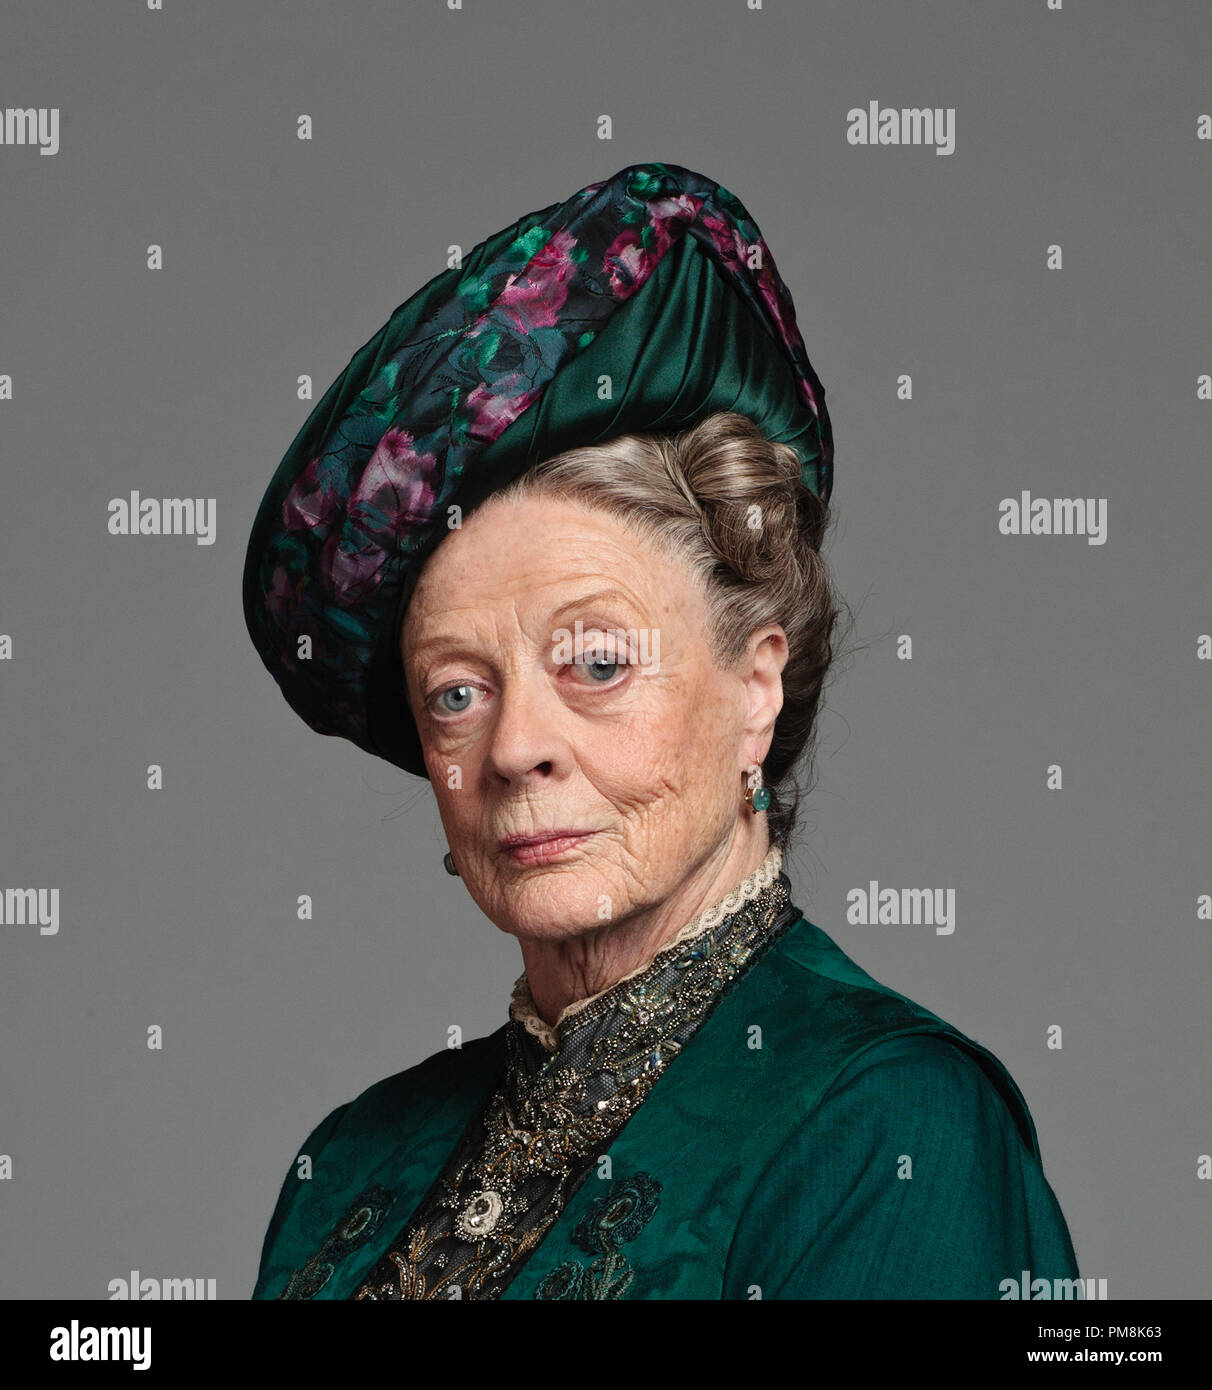 Maggie Smith as The Dowager Countess of Grantham 'Downton Abbey' Season 2, 2012 - Stock Image